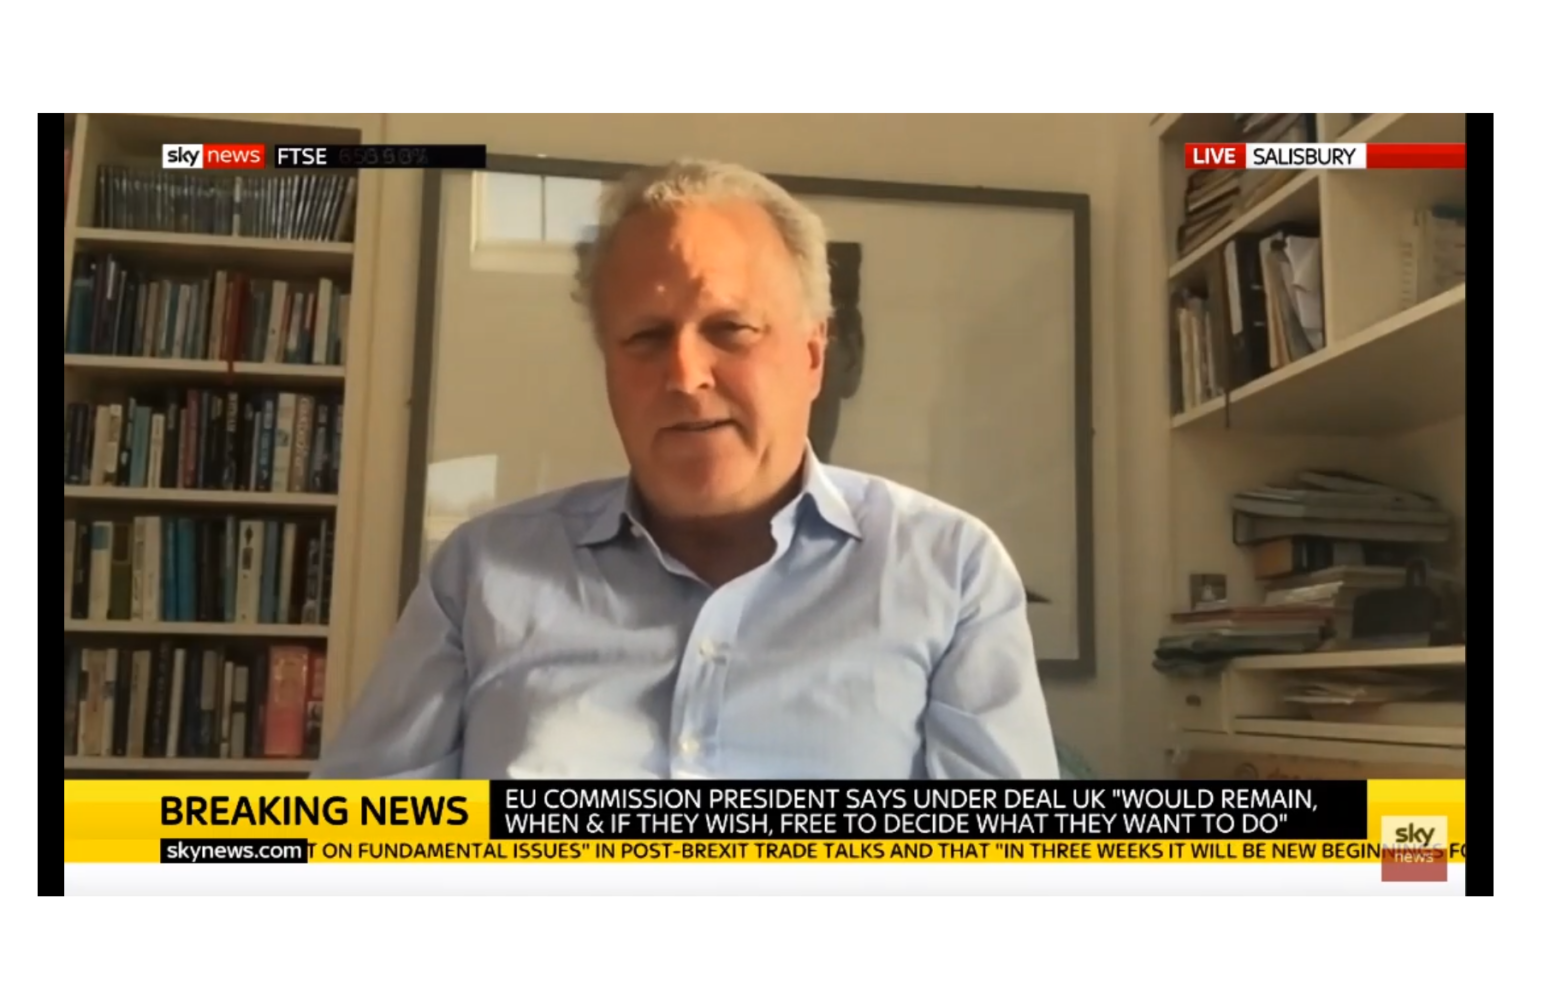 CWEIC Chairman Lord Marland interviewed on Sky News